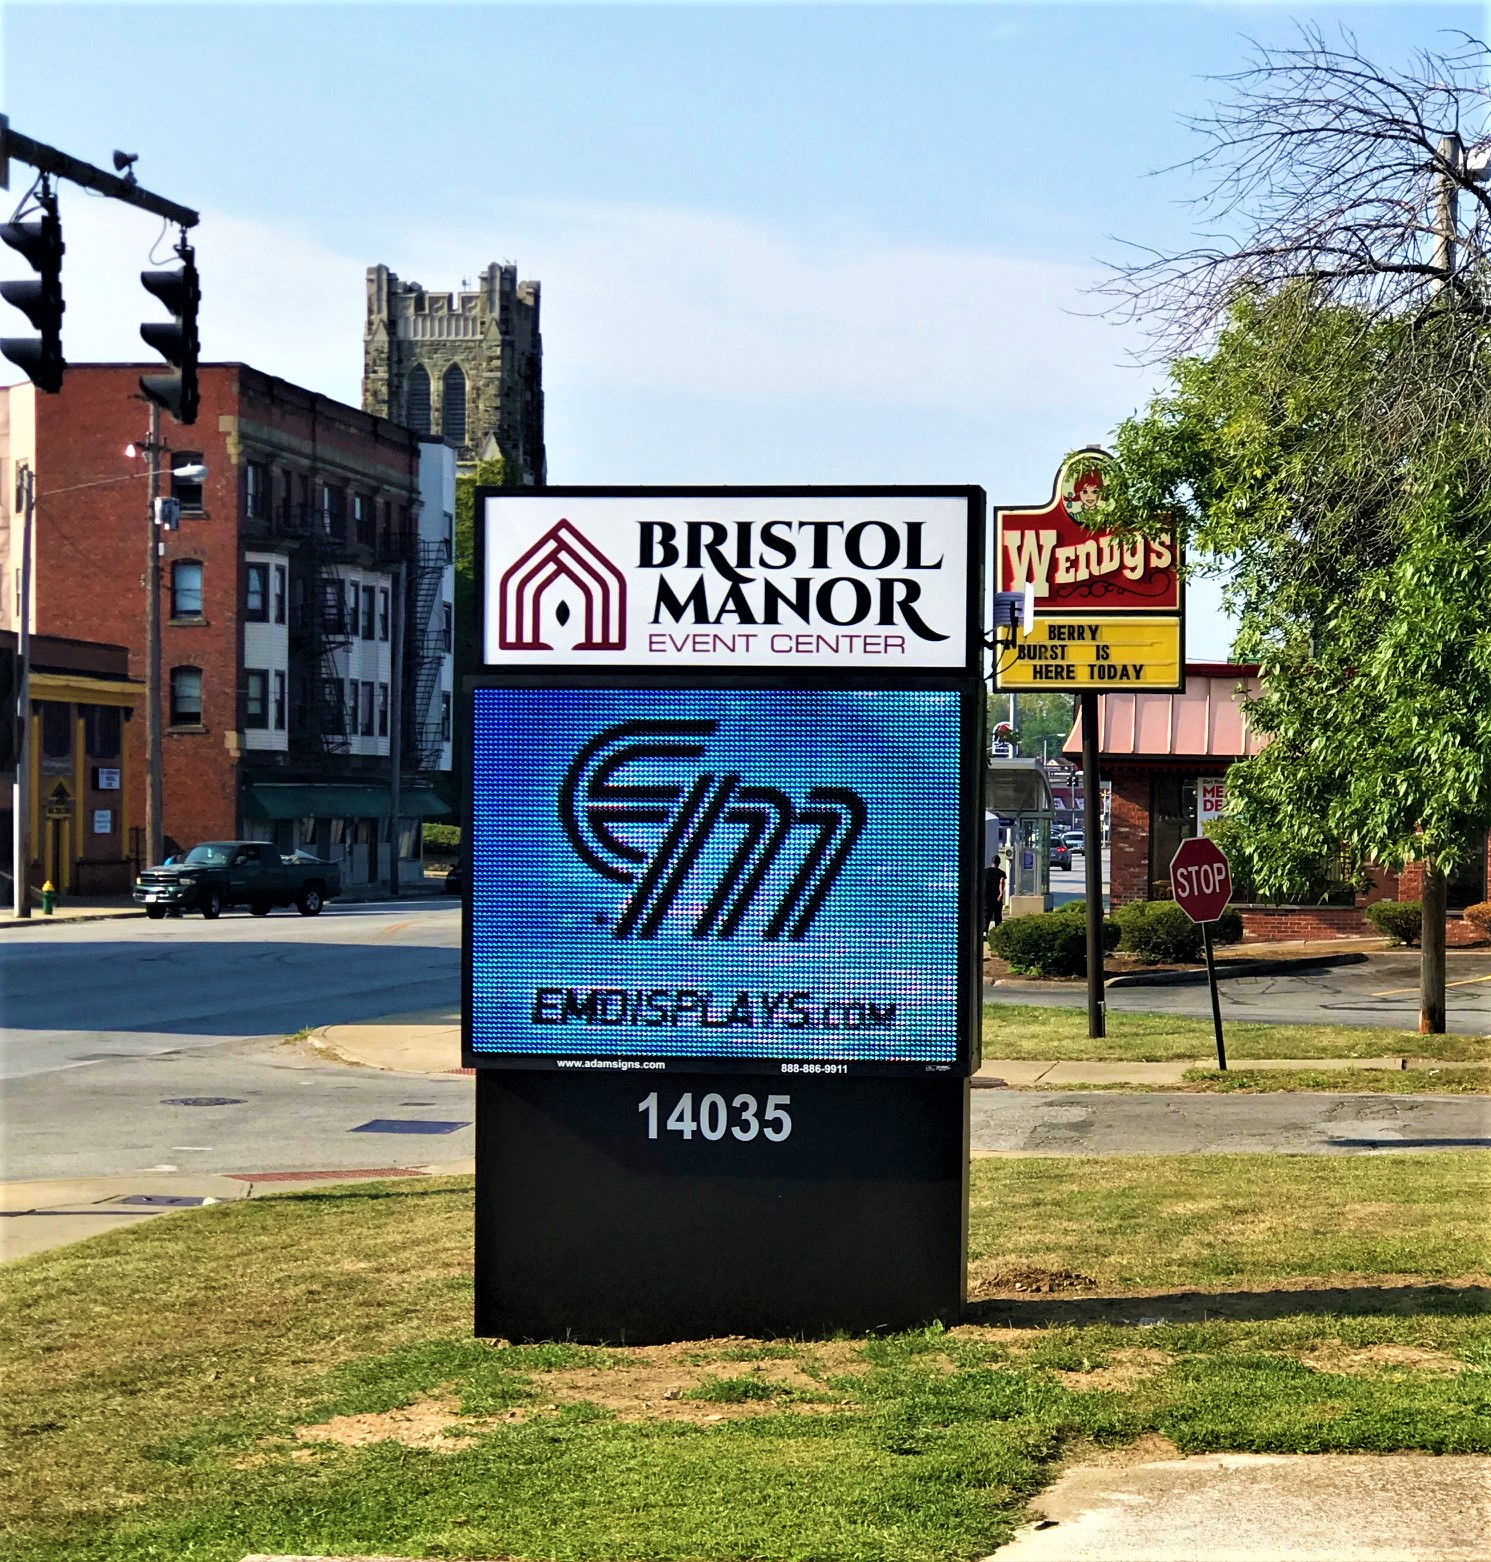 Bristol Manor Event Center Uses LED Sign to Build Awareness